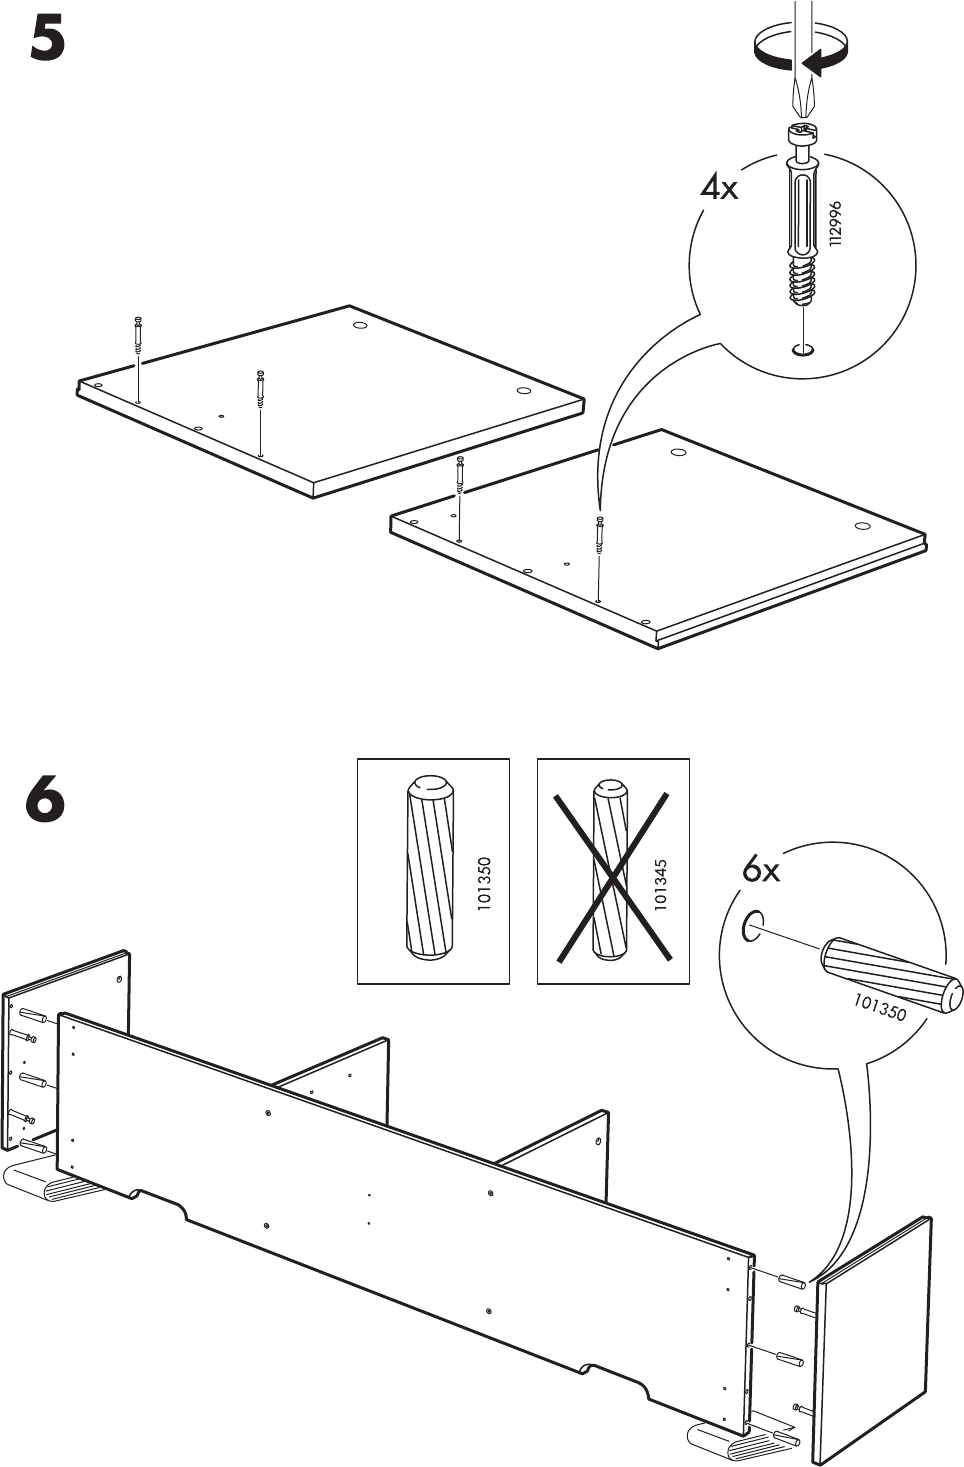 Page 7 of IKEA TV Video Accessories AA-212046-5 User Guide